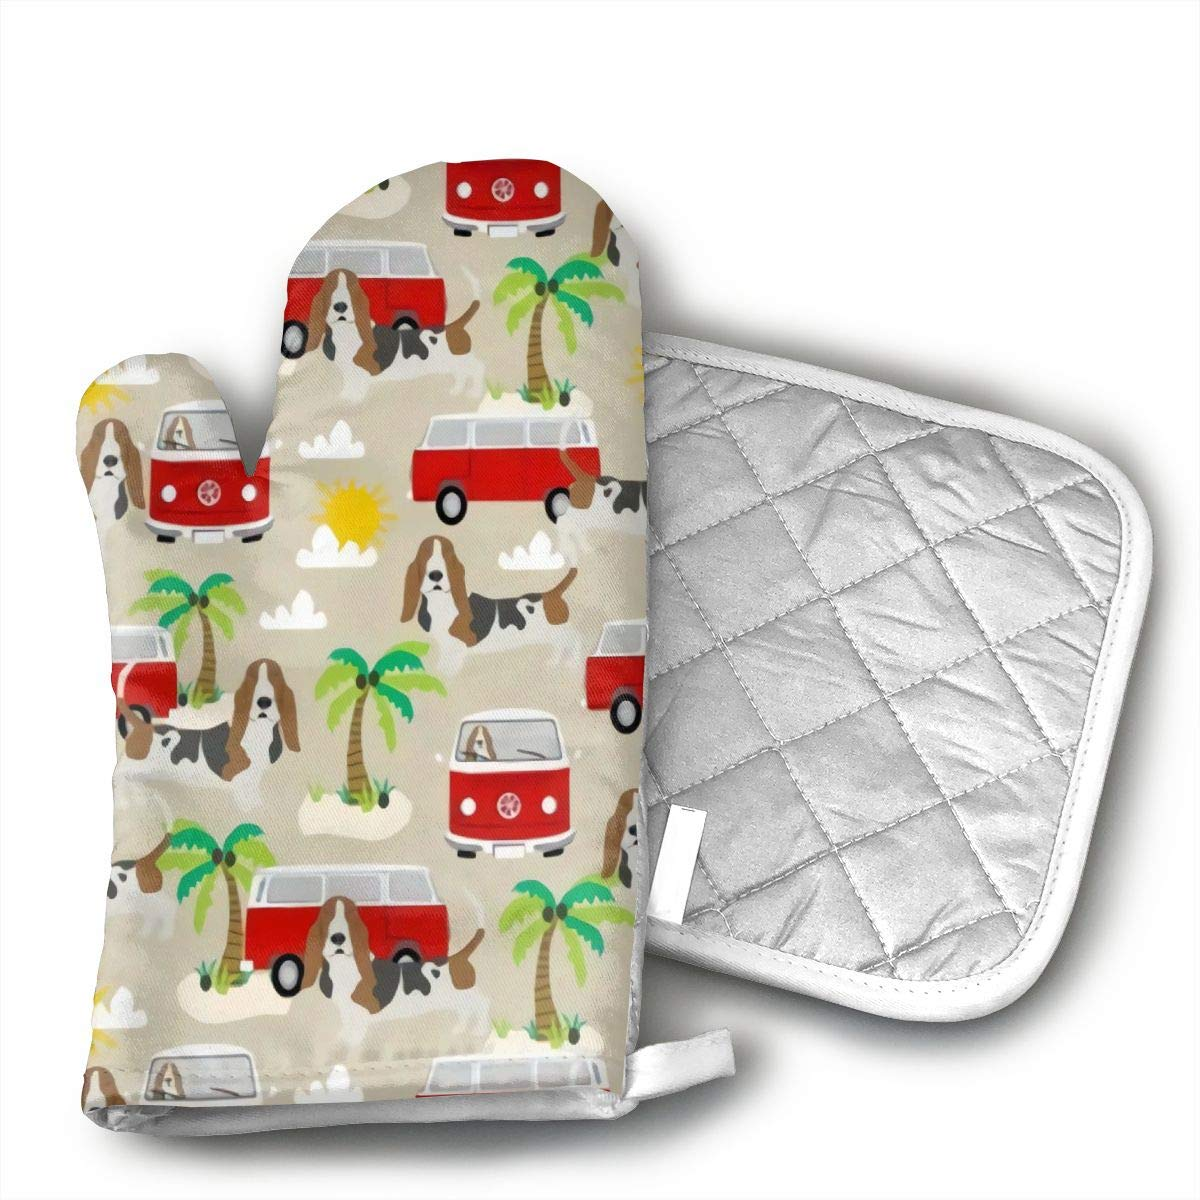 CHFSTi Oven Mitts Basset Hound Dog Beach Bus Hippie Bus Palm Trees Non-Slip Silicone Oven Mitts& Pot Holders, Heat Resistant to 500Fahrenheit Degrees Kitchen Oven Gloves